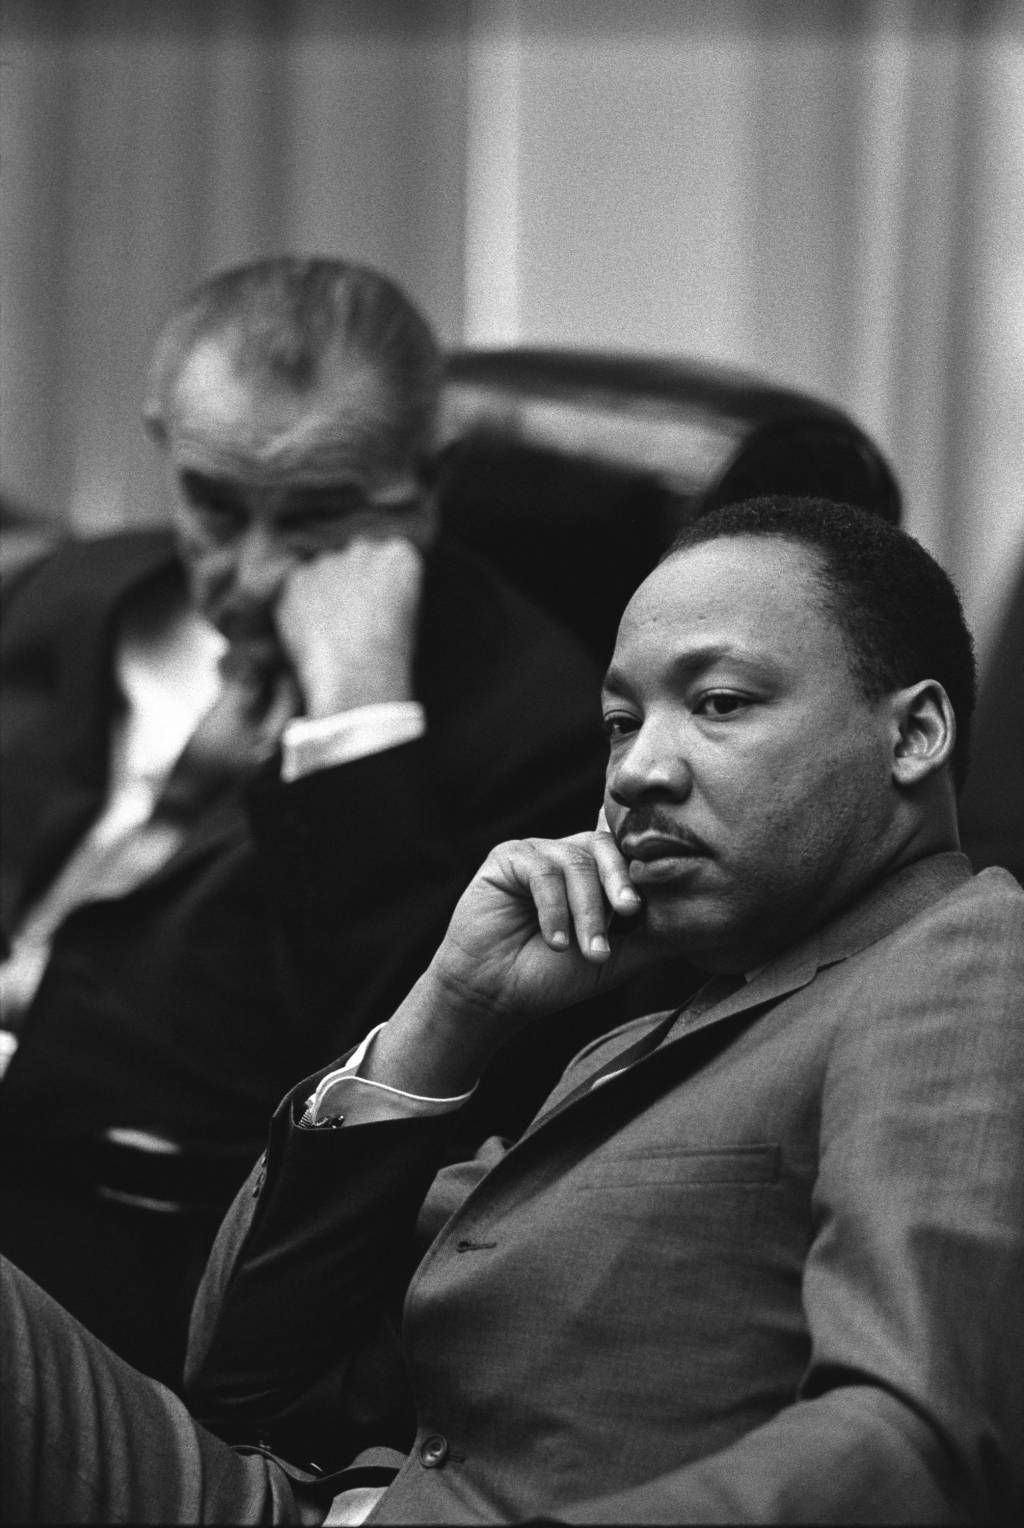 what is the deference between martin luther king and patrick henry president lyndon b johnson and rev dr martin luther king jr